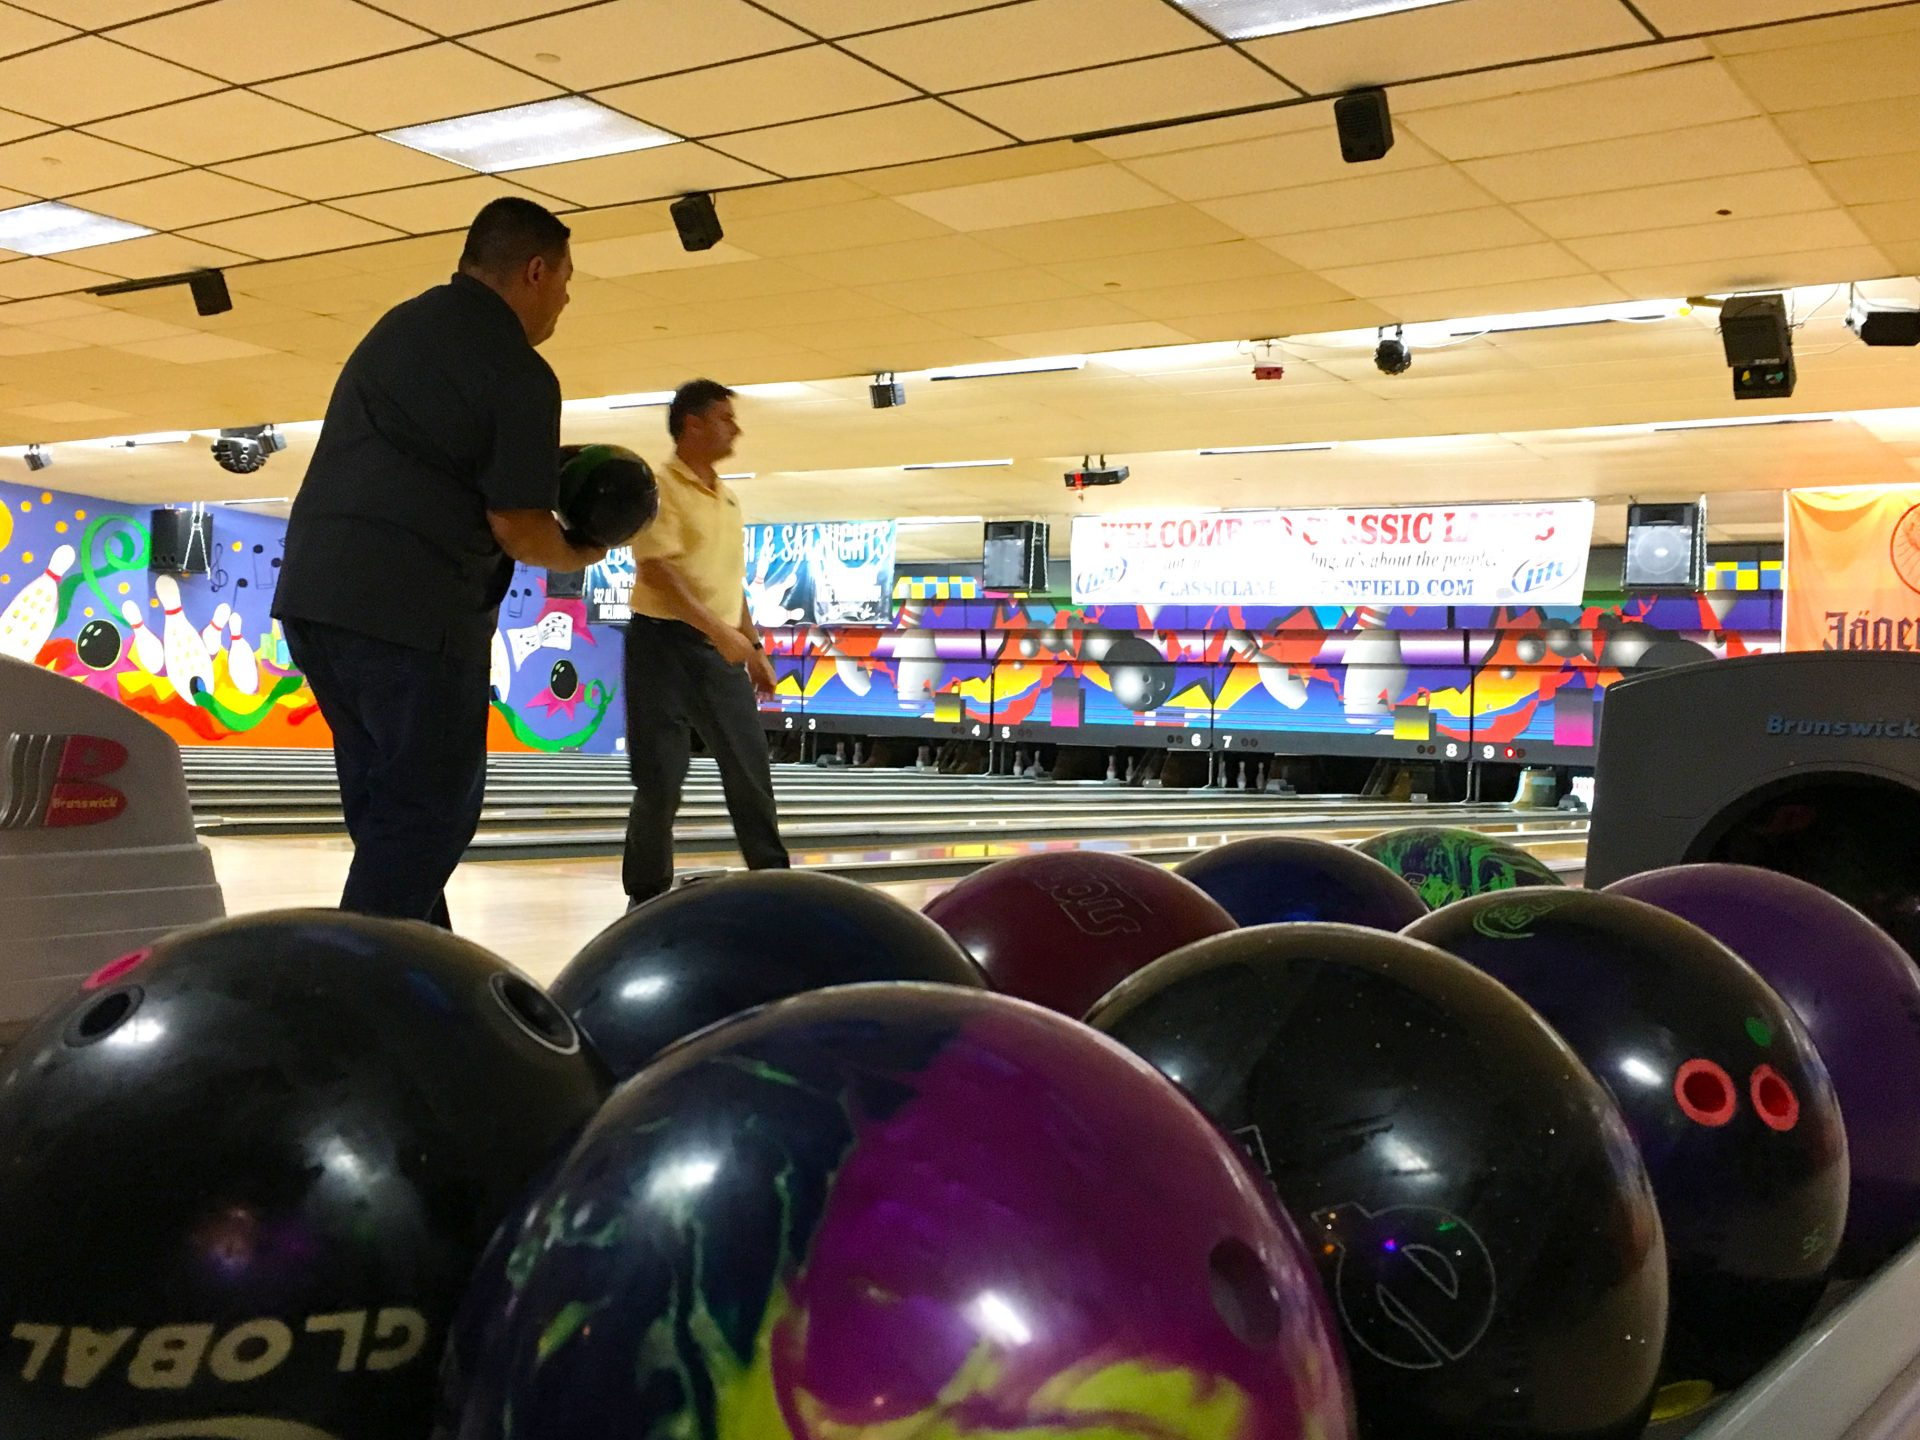 Why The 2018 Winter Olympics Should Try Going Bowling